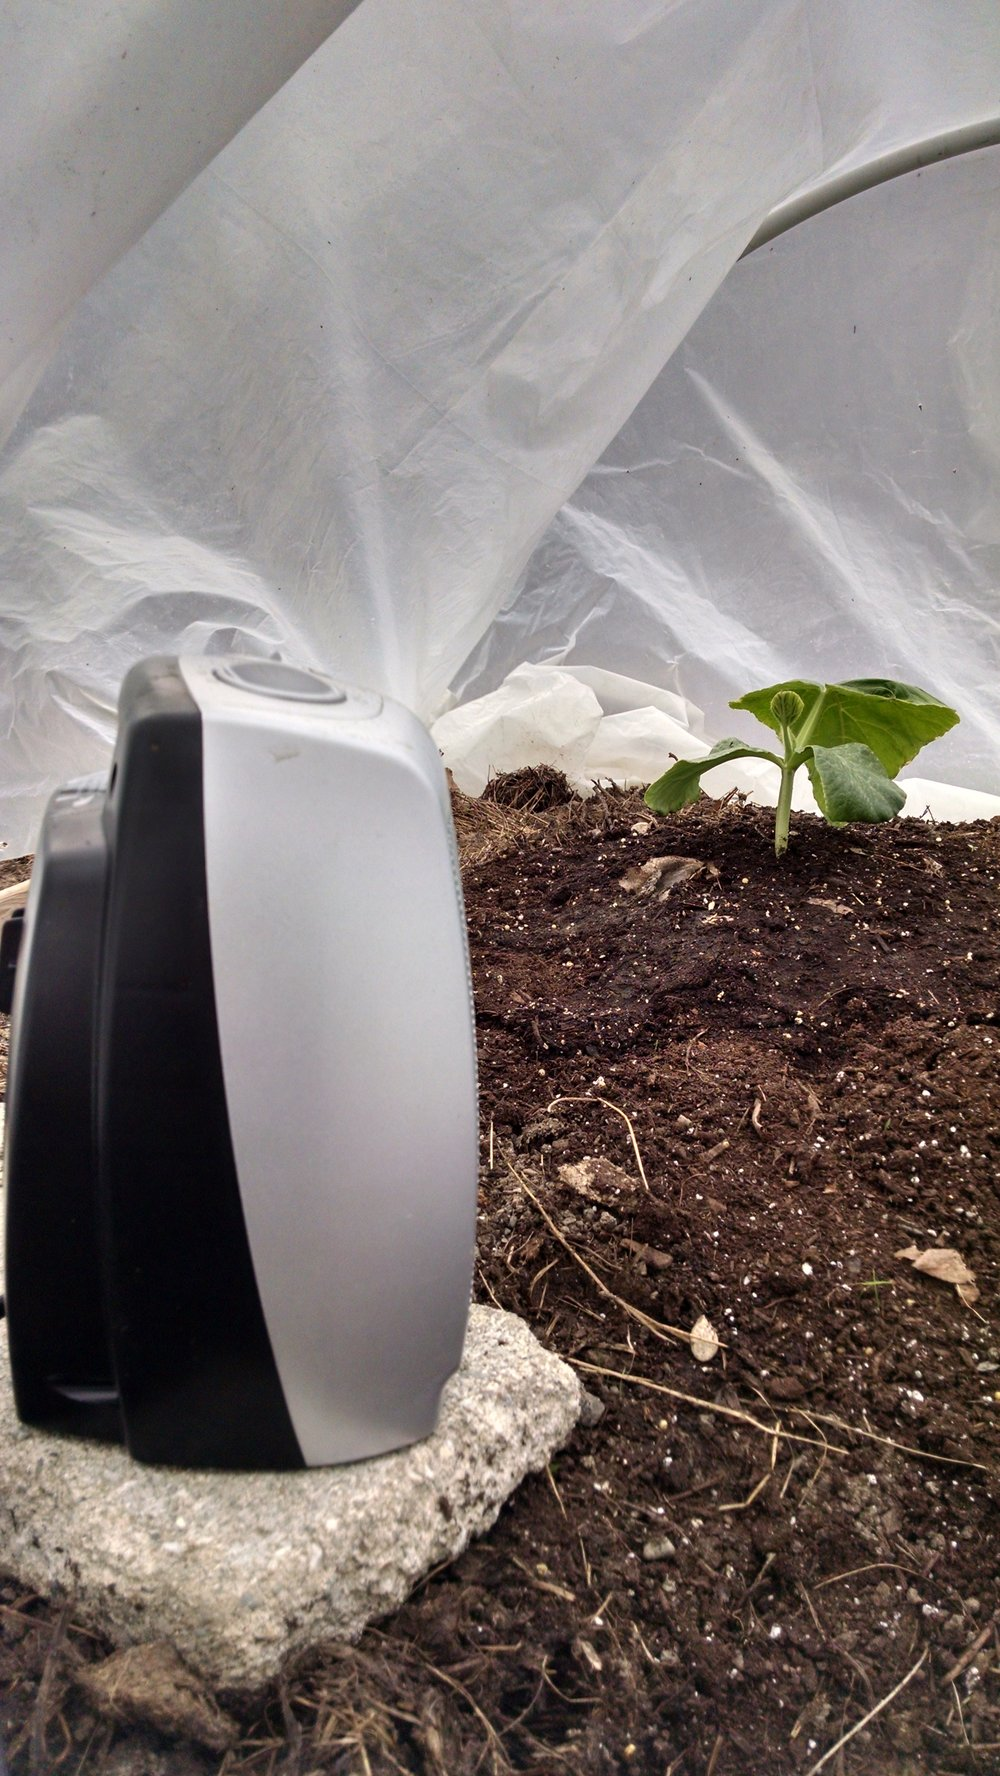 My setup inside the hoop house with a heater